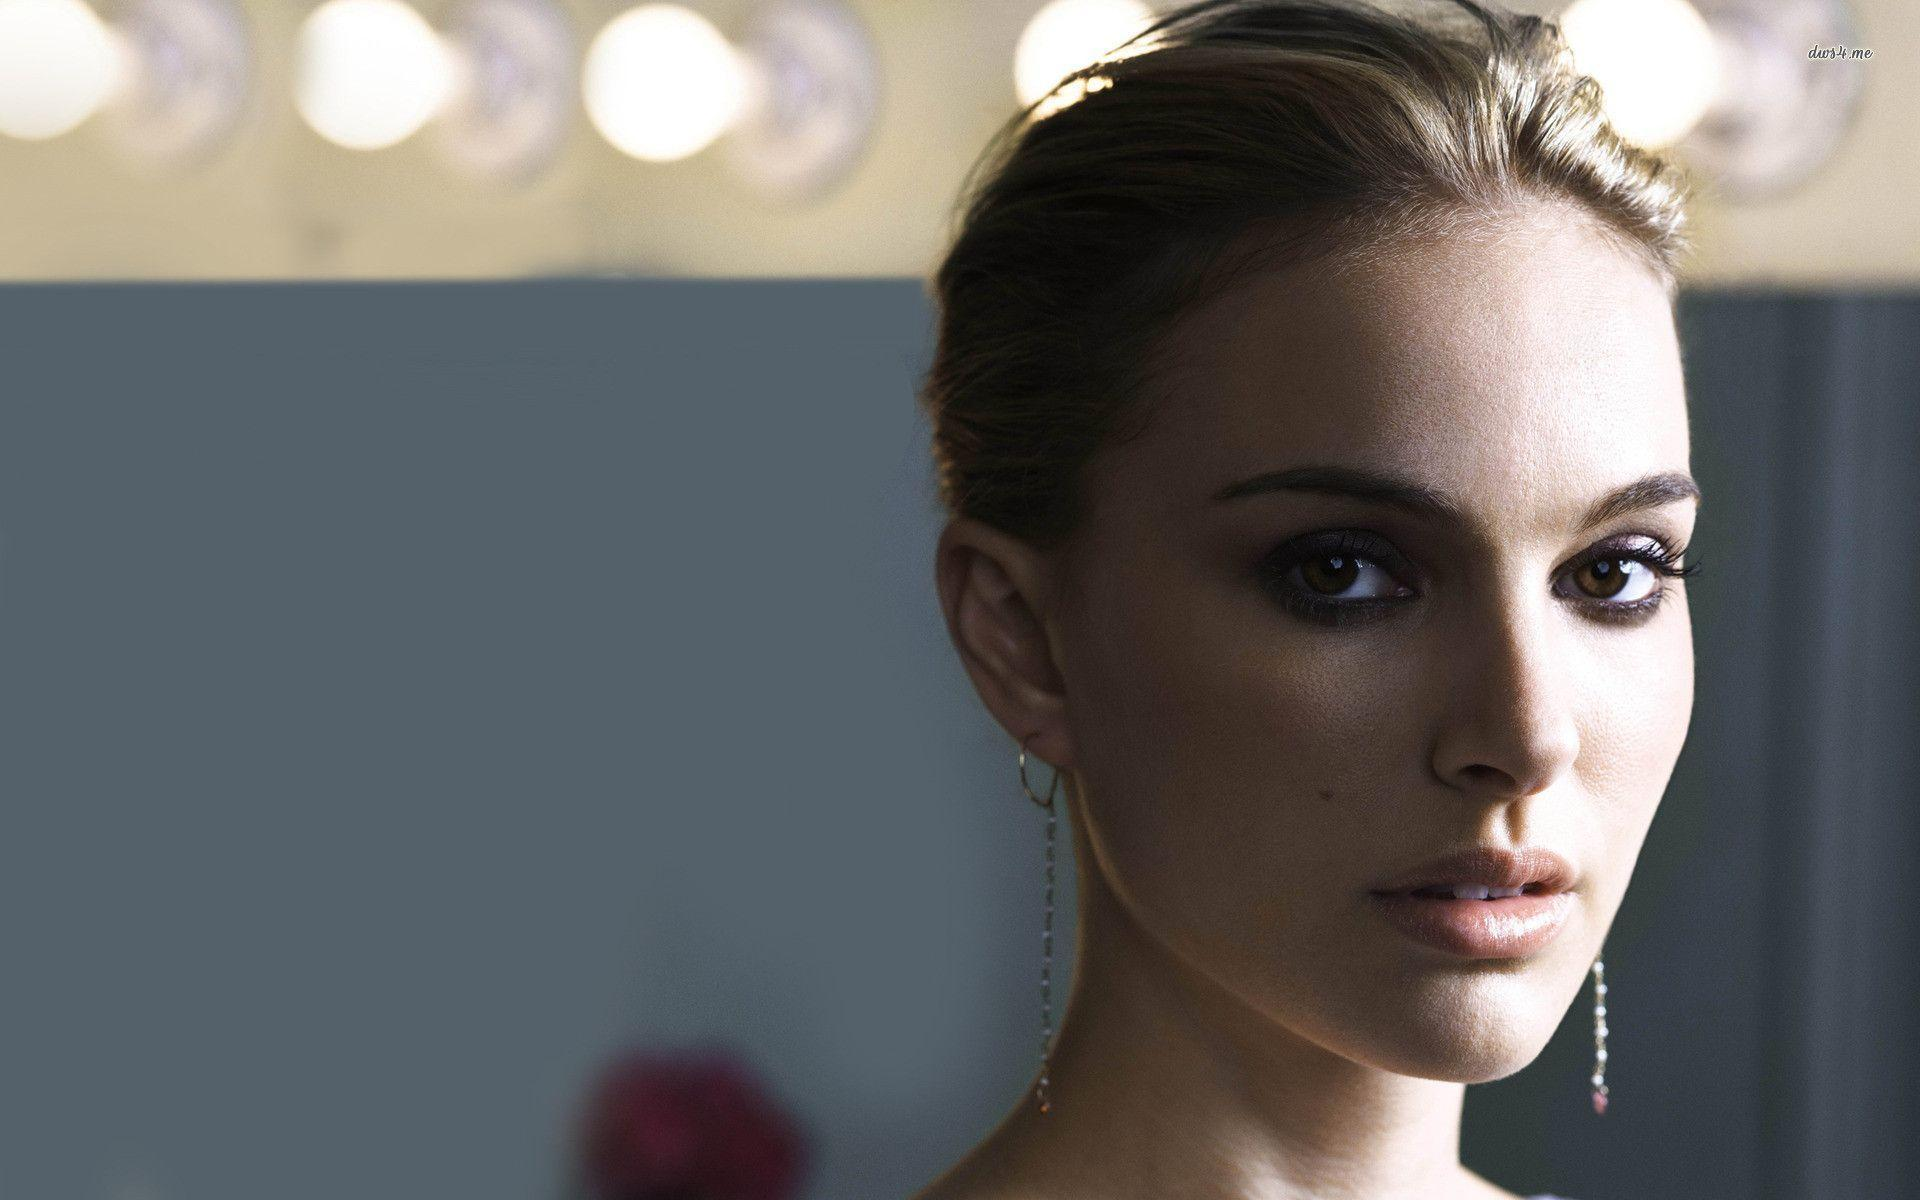 Natalie Portman wallpaper - Celebrity wallpapers - #